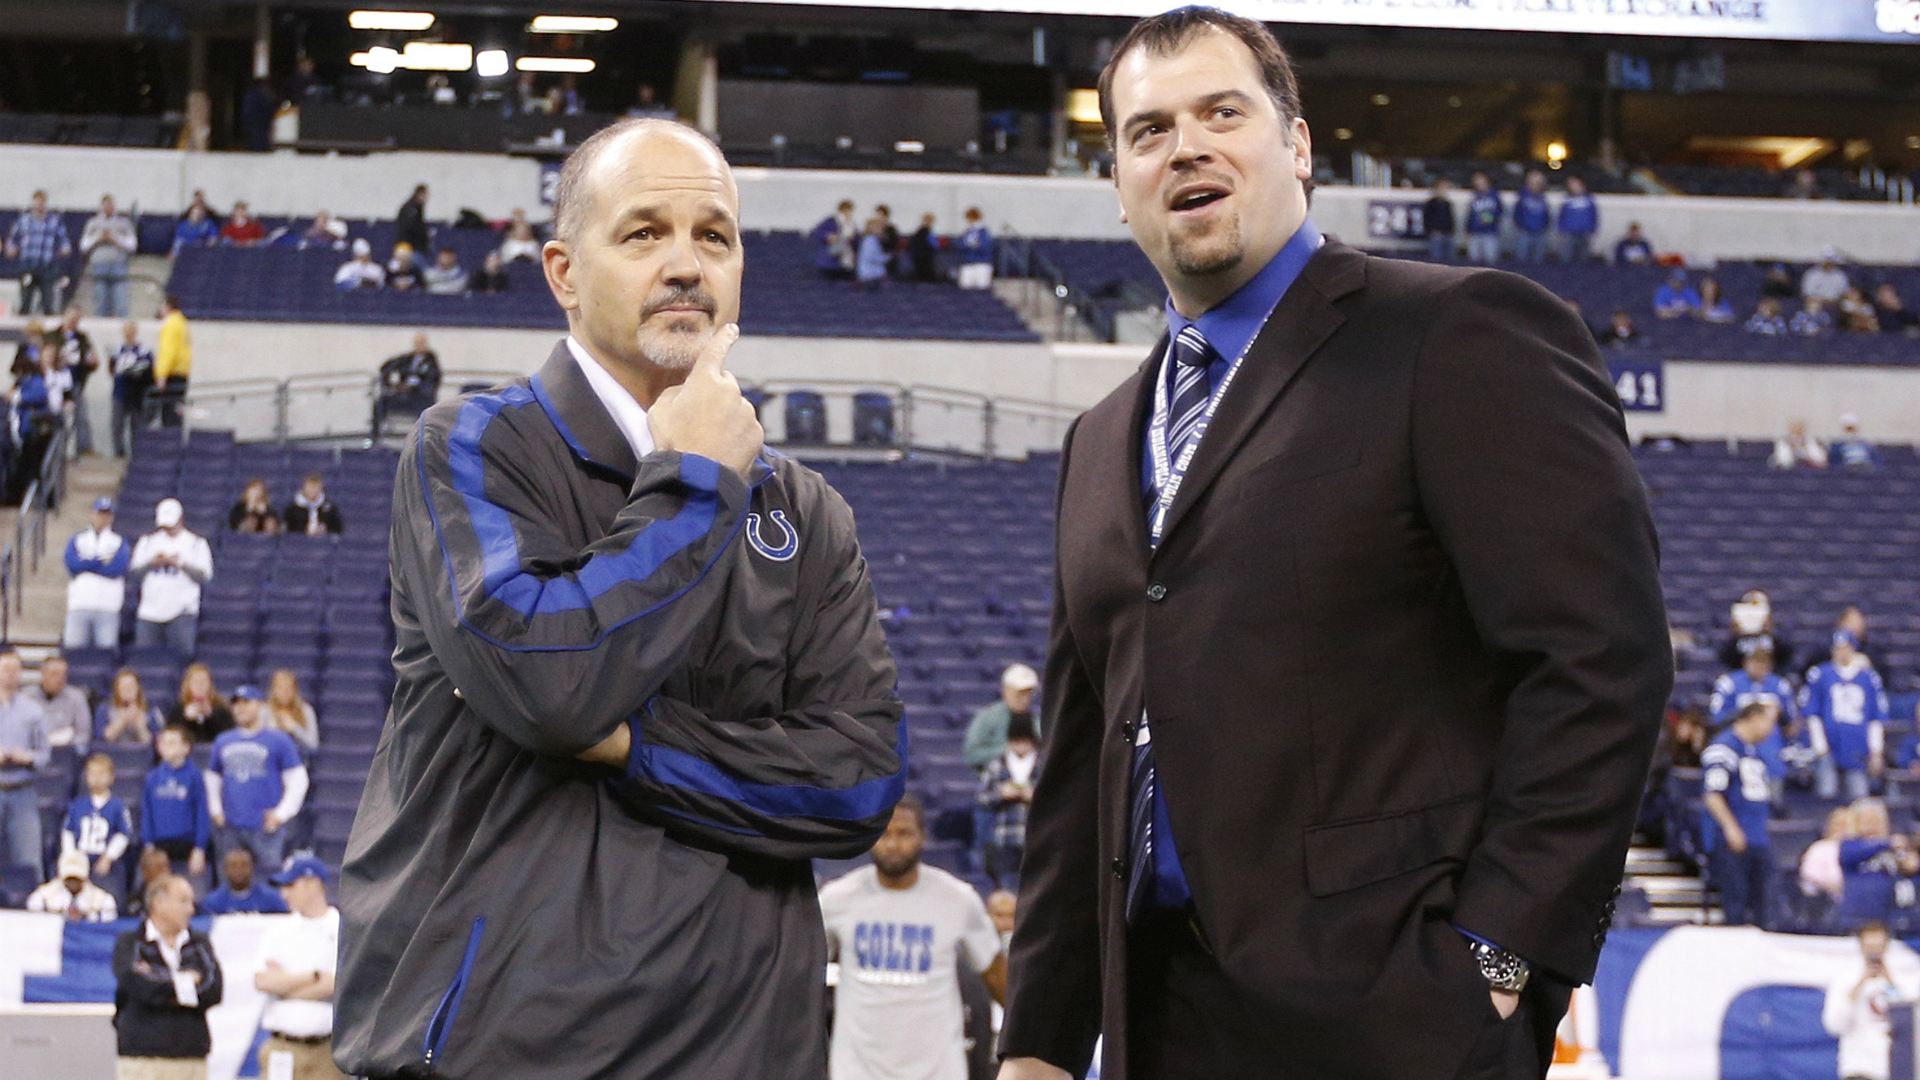 Report: Chuck Pagano's relationship with GM strained by Deflate-gate